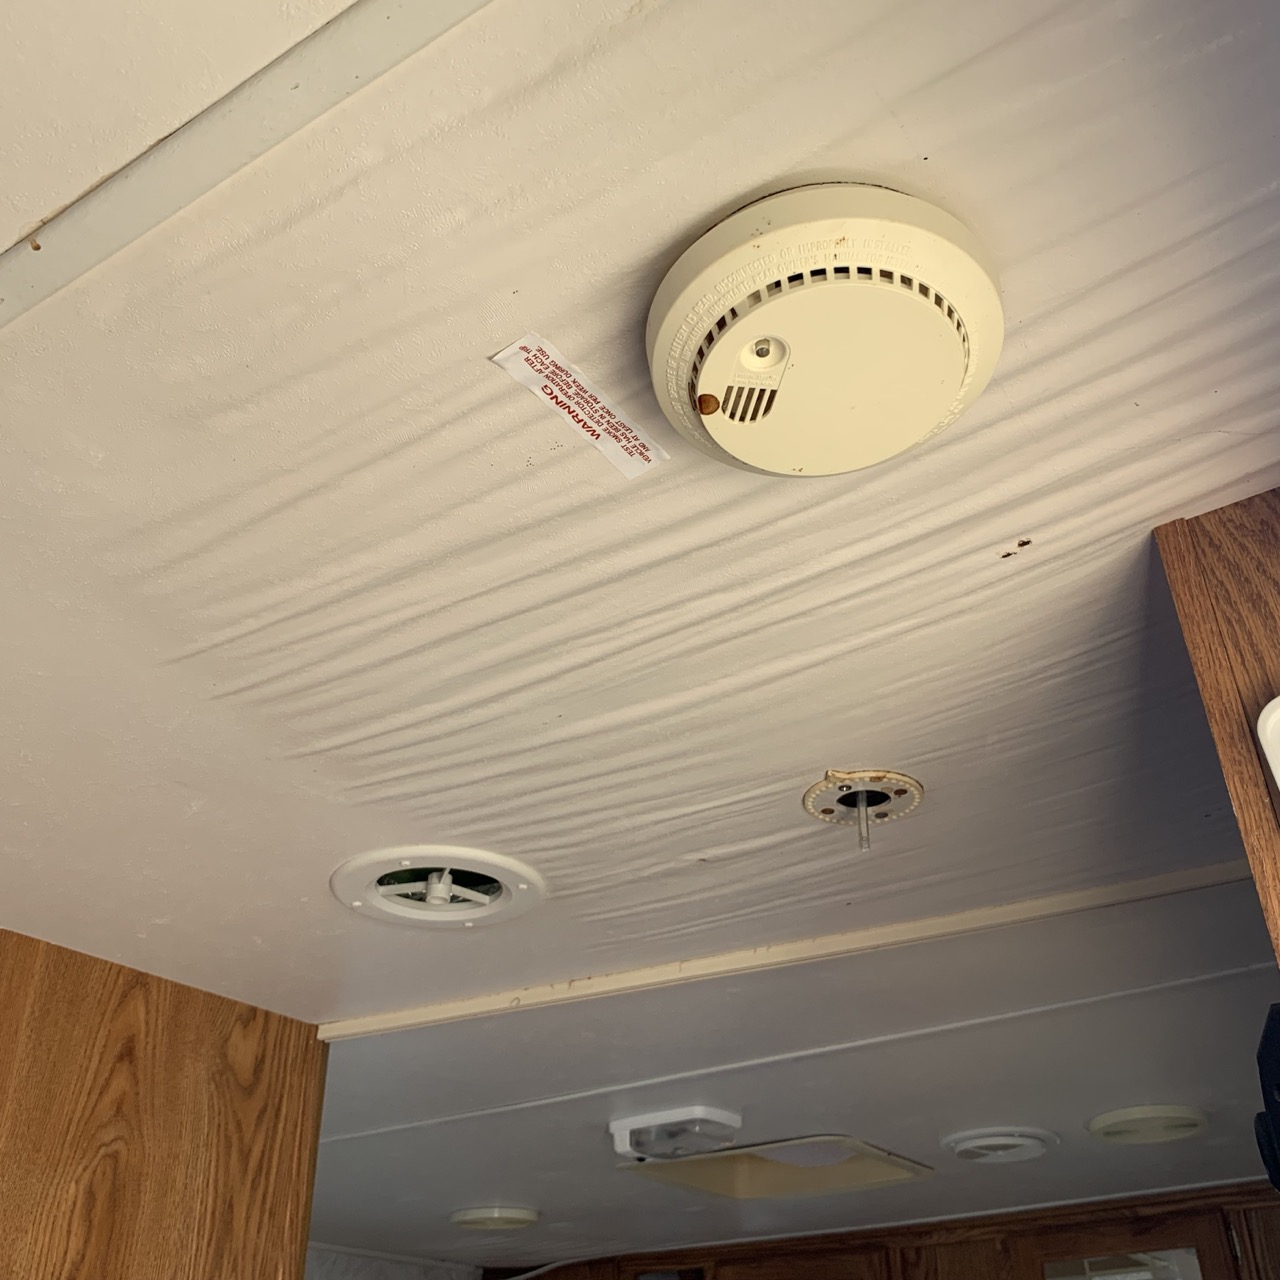 Even a small leak in an RV's roof can cause fairly extensive damage.